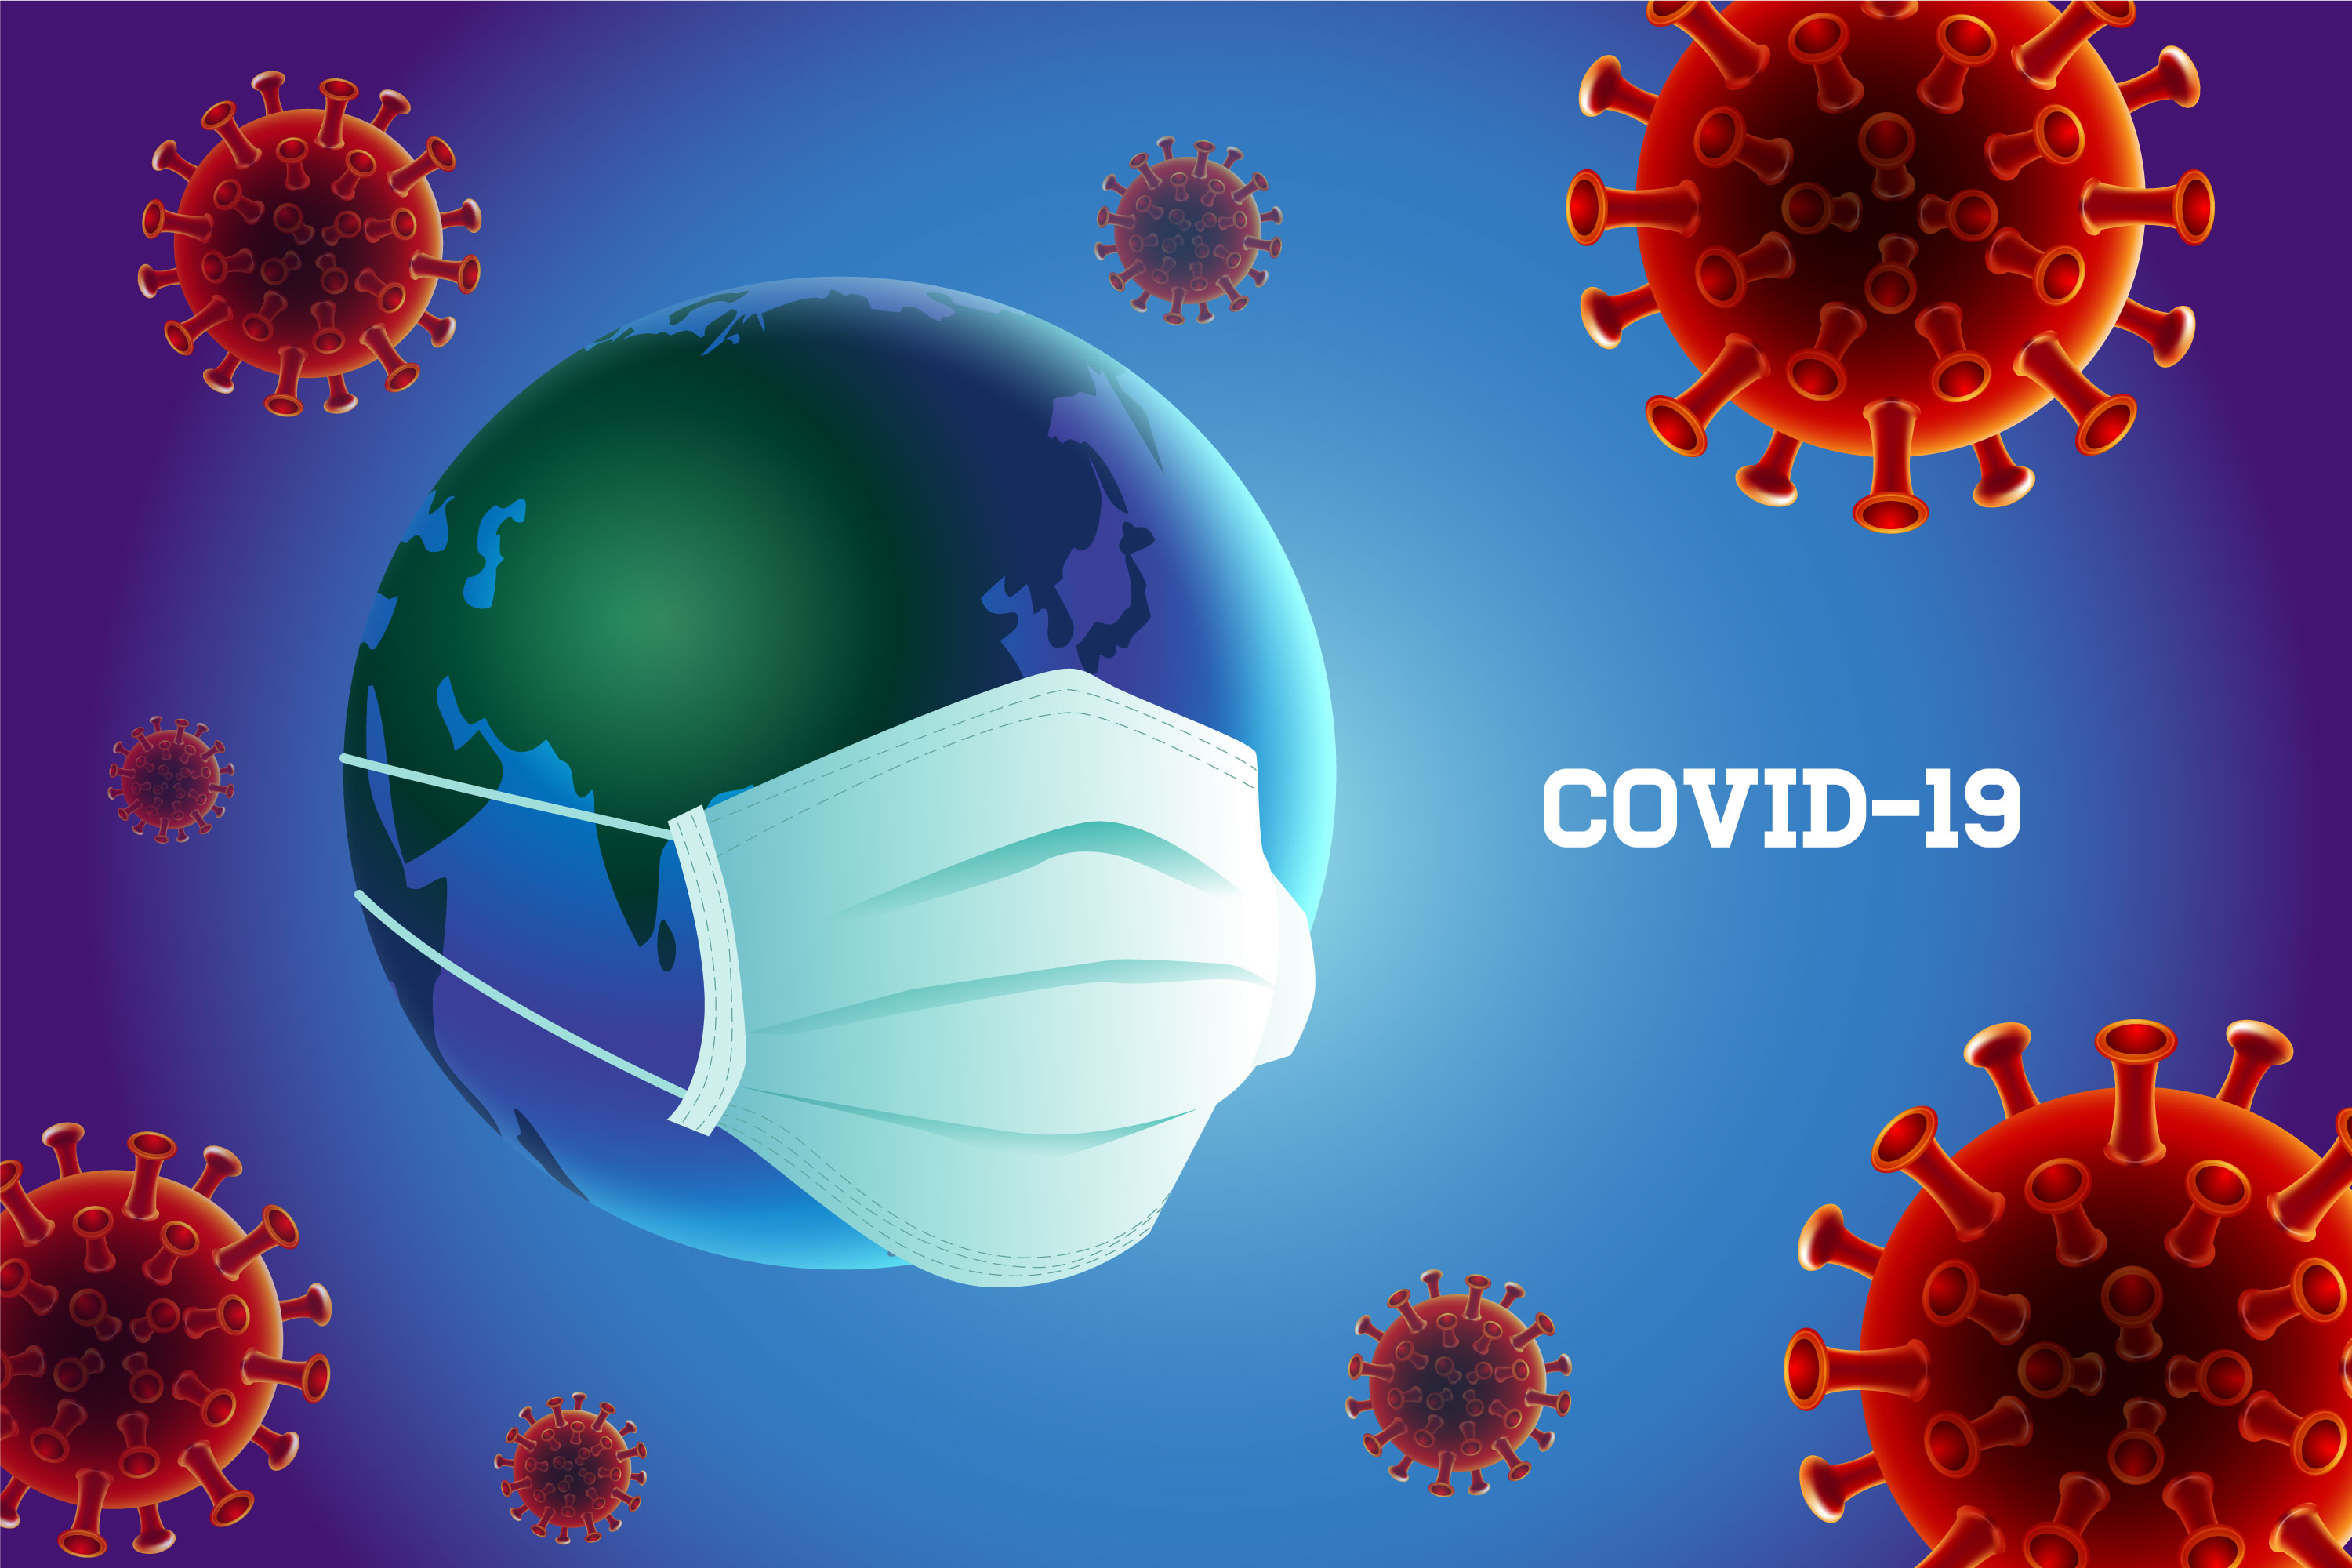 Coronavirus COVID-19 Prevention with Earth Wearing Mask - Download ...